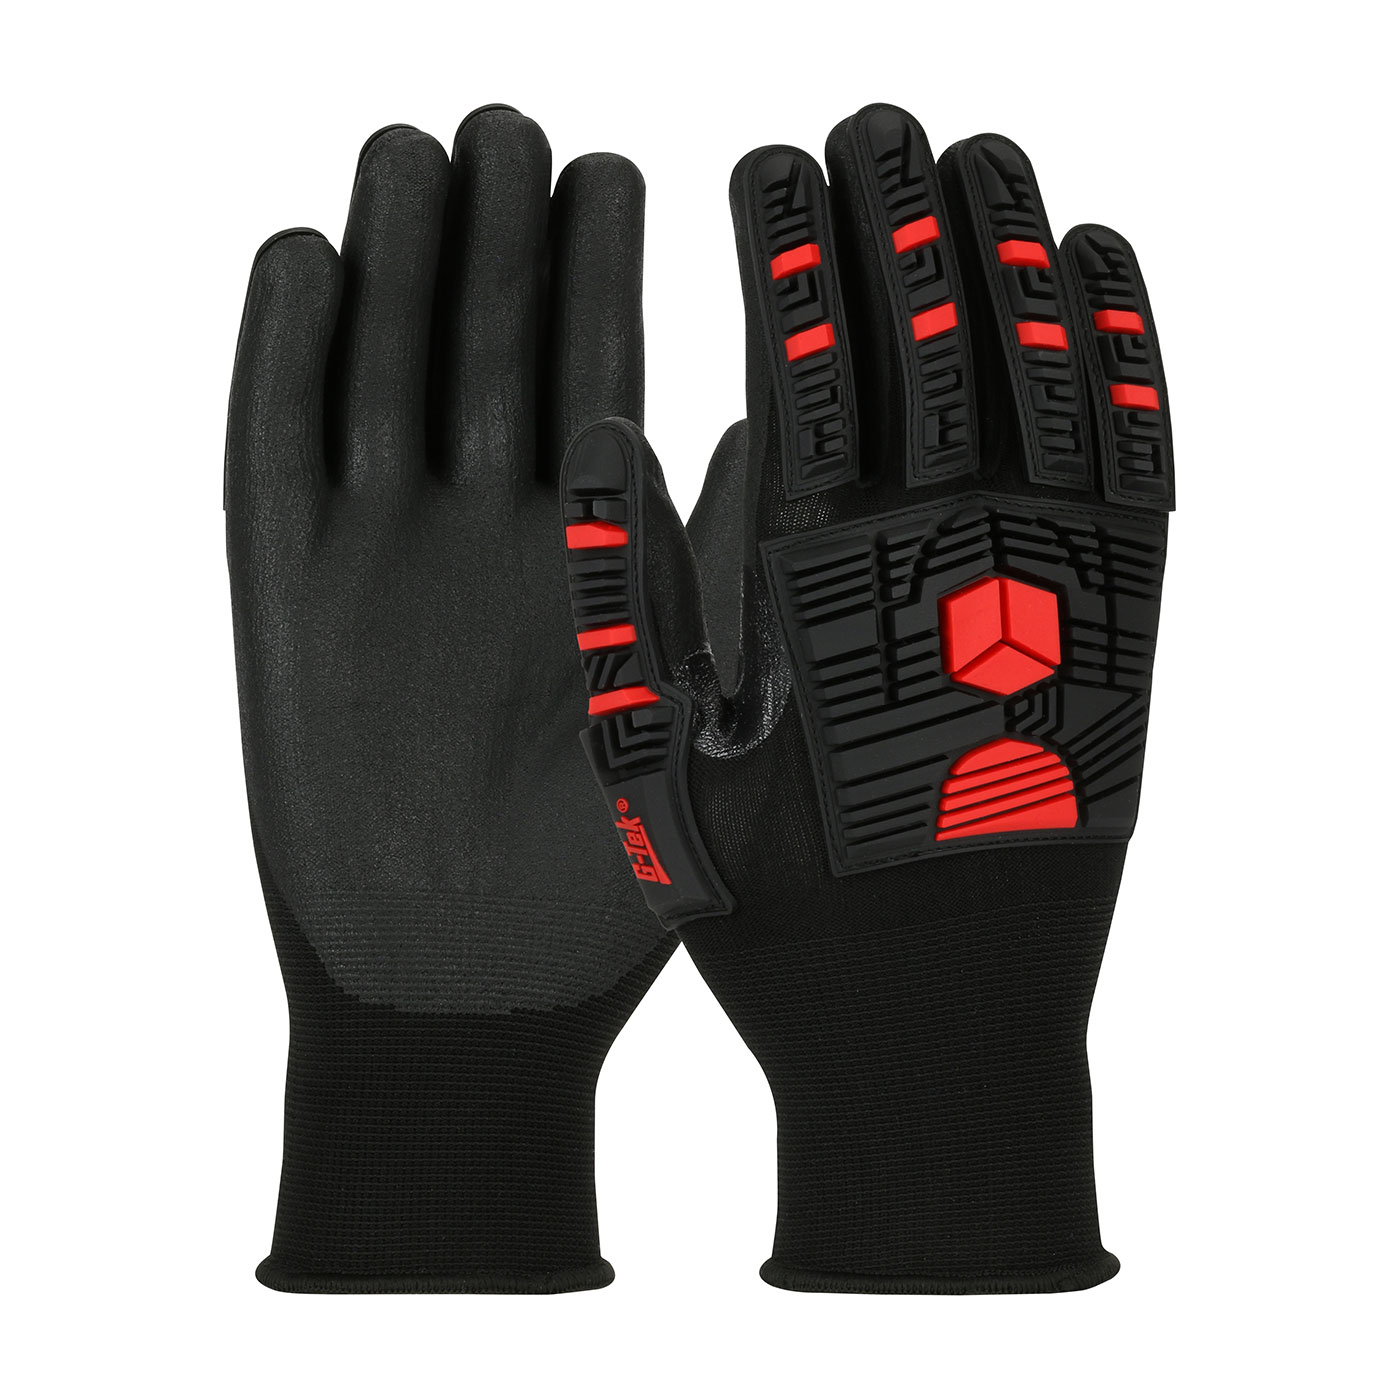 34-MP155 PIP® G-Tek® GP™ Seamless Knit Nylon Glove with Impact Protection and Nitrile Coated Foam Grip on Palm & Fingers